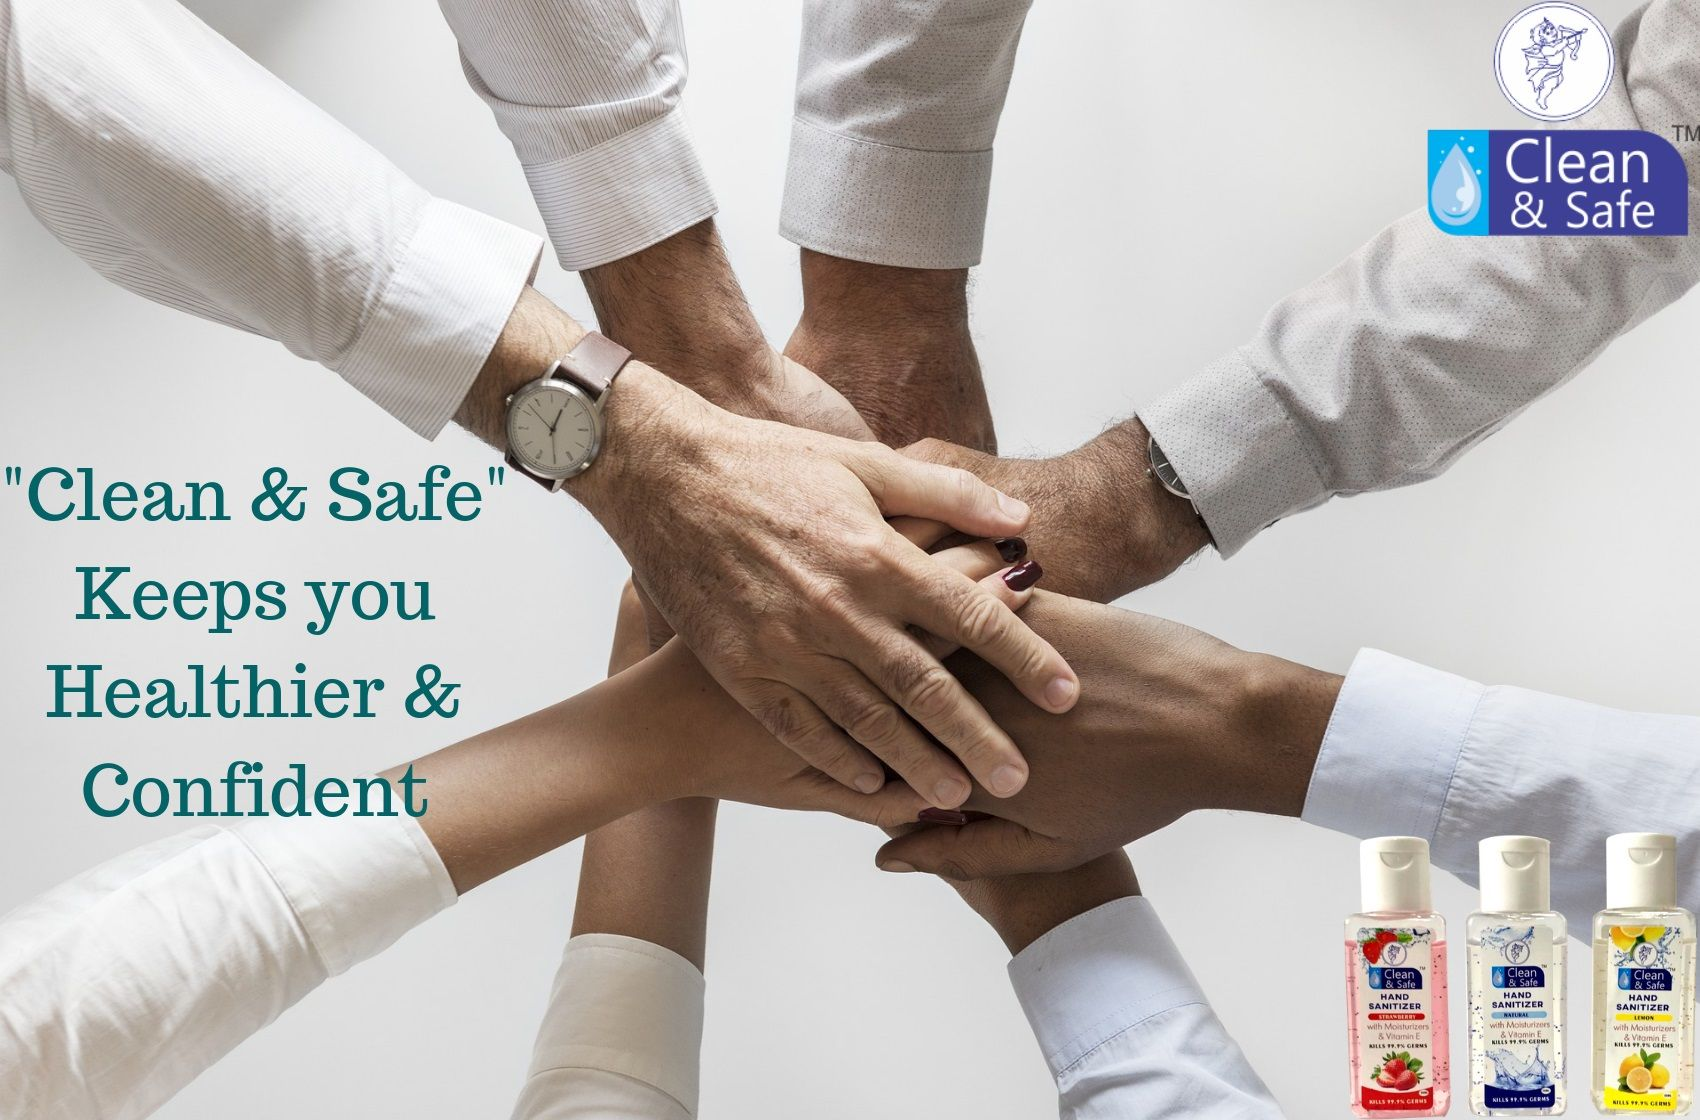 Keep Safe With Our Portable Size Hand Sanitizer With Aloe Honey